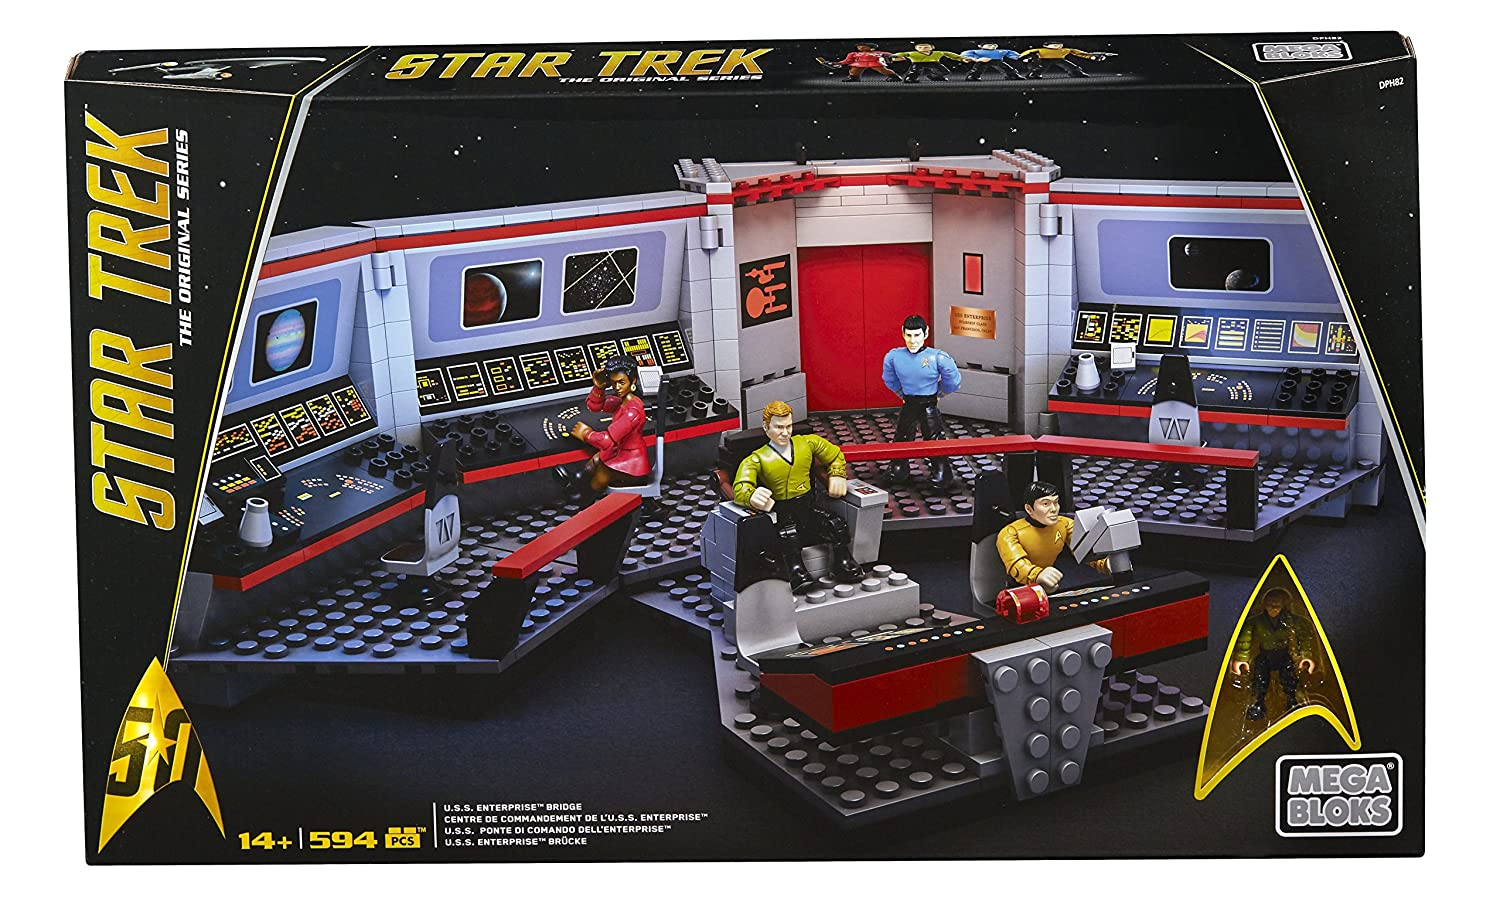 Top 9 Best LEGO Star Trek Sets Reviews in 2021 11